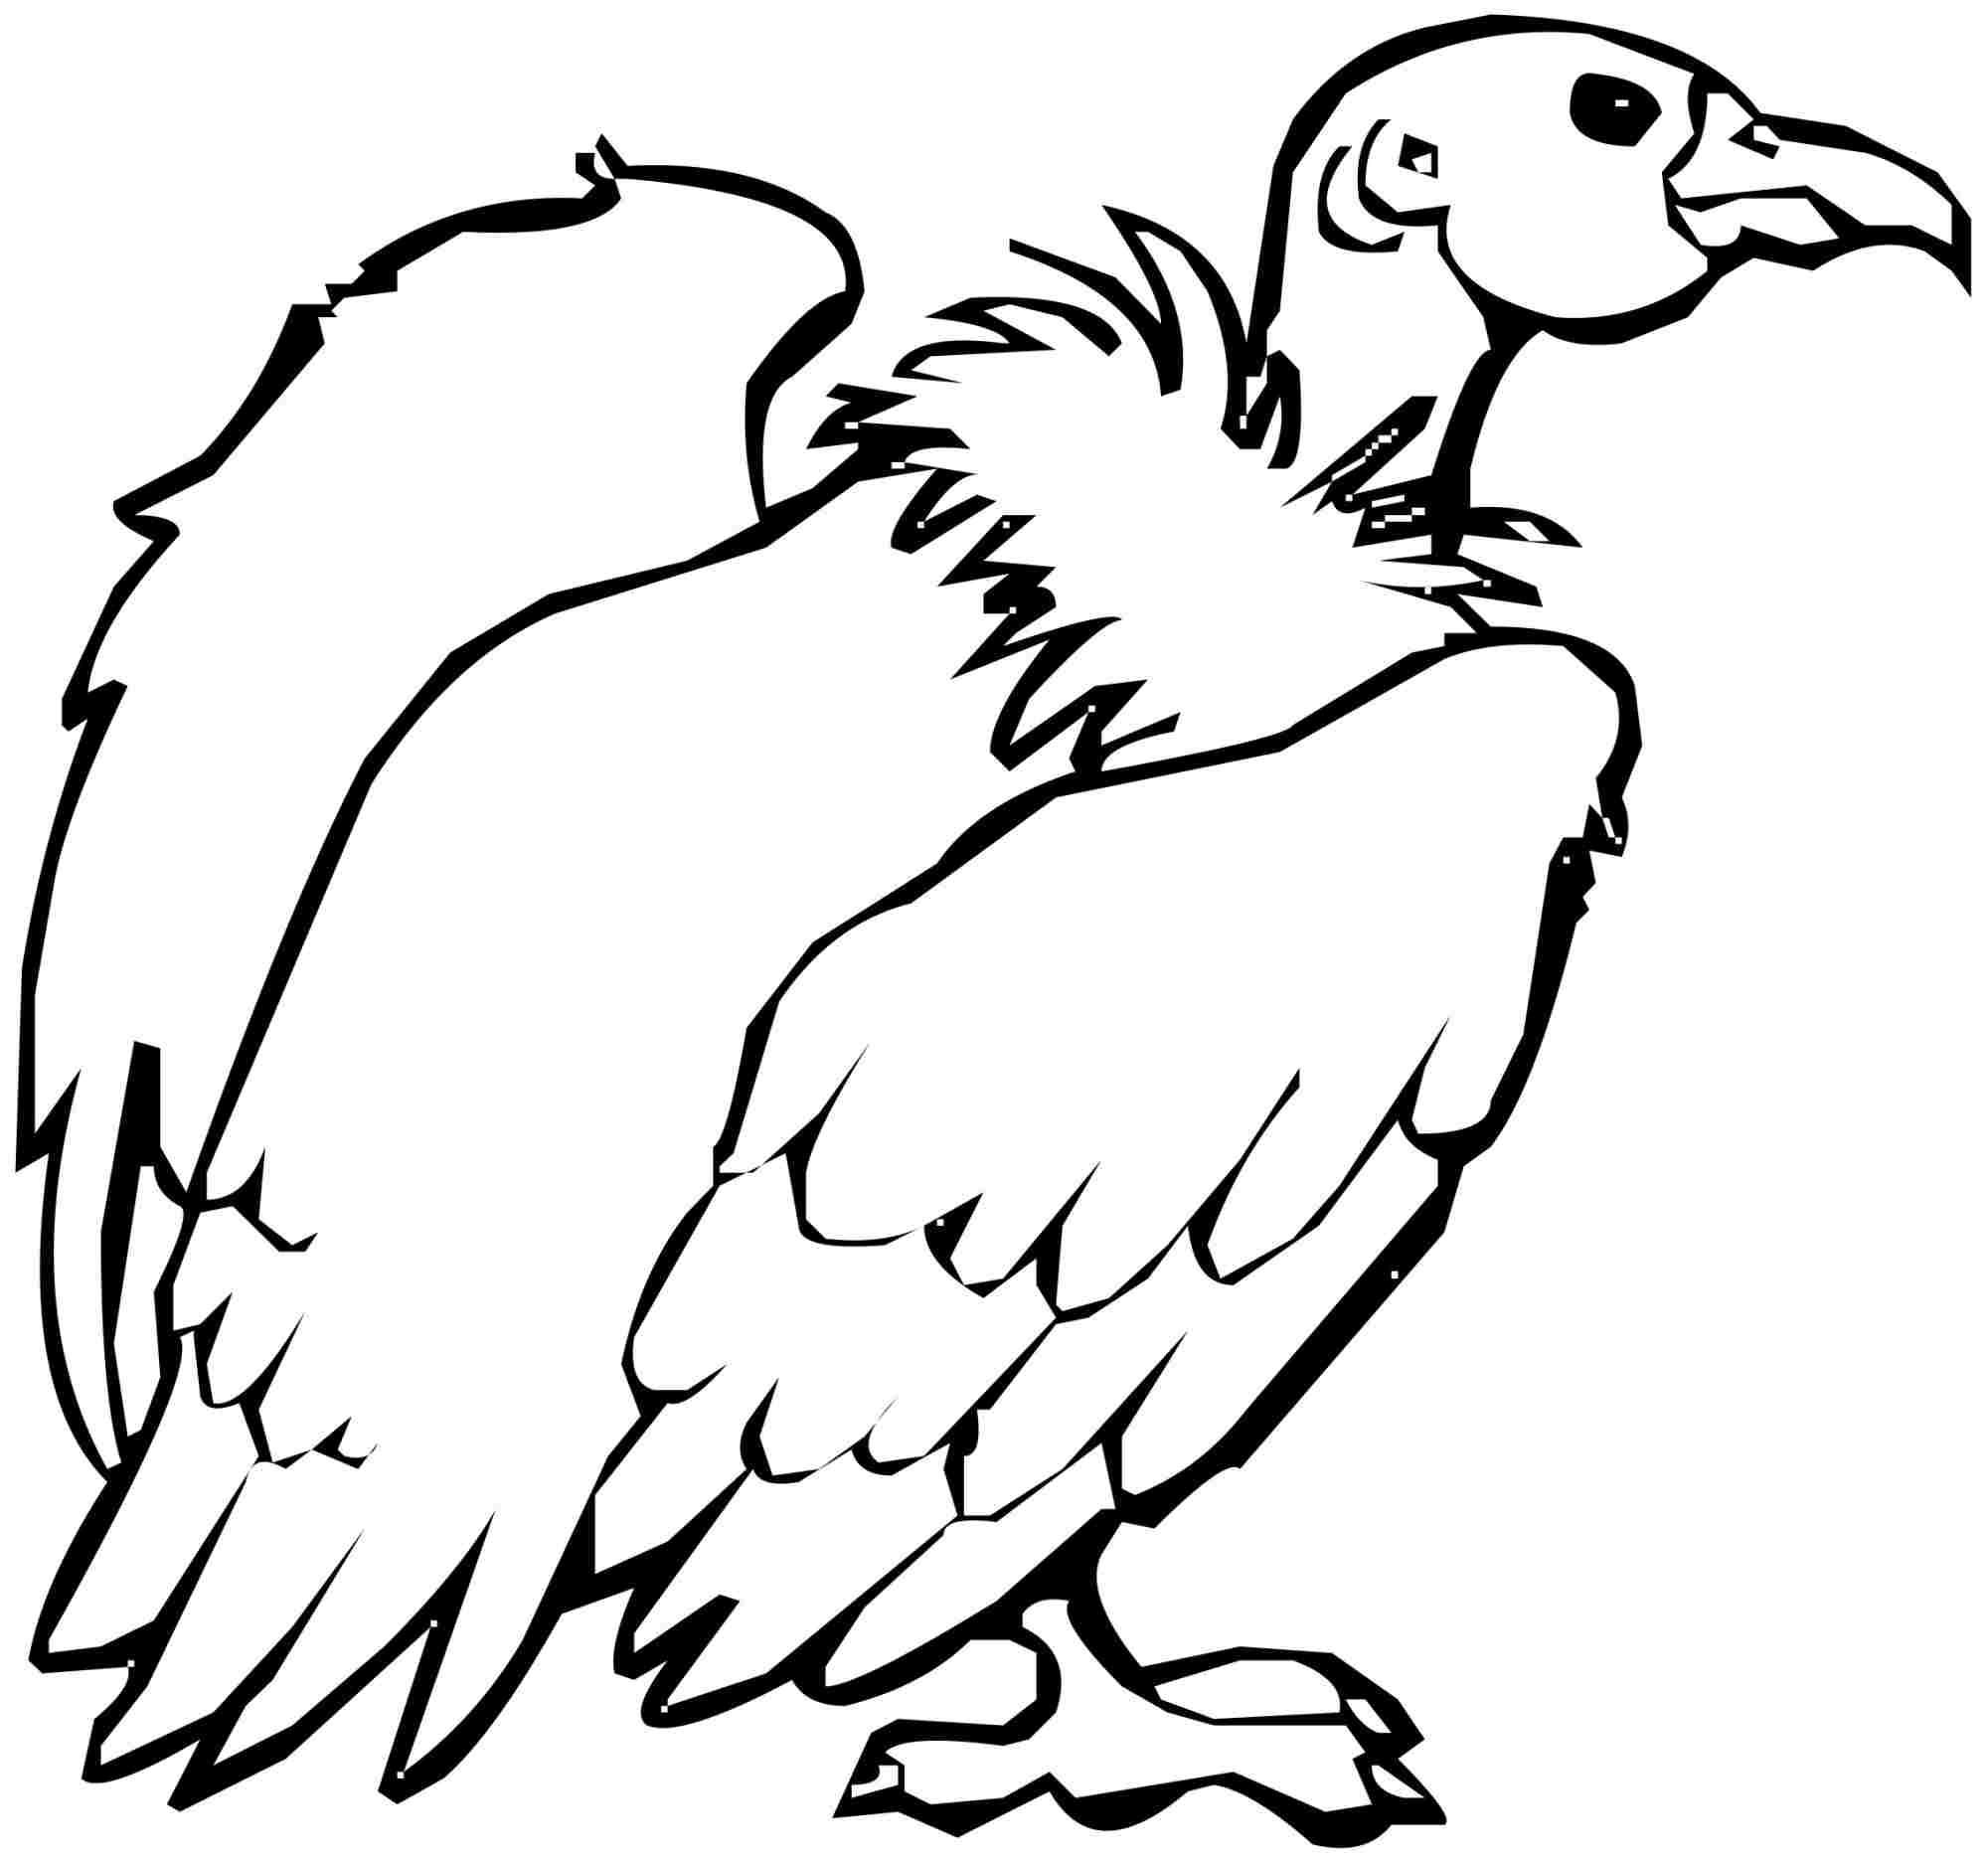 vulture coloring pages vulture coloring pages download and print for free pages vulture coloring